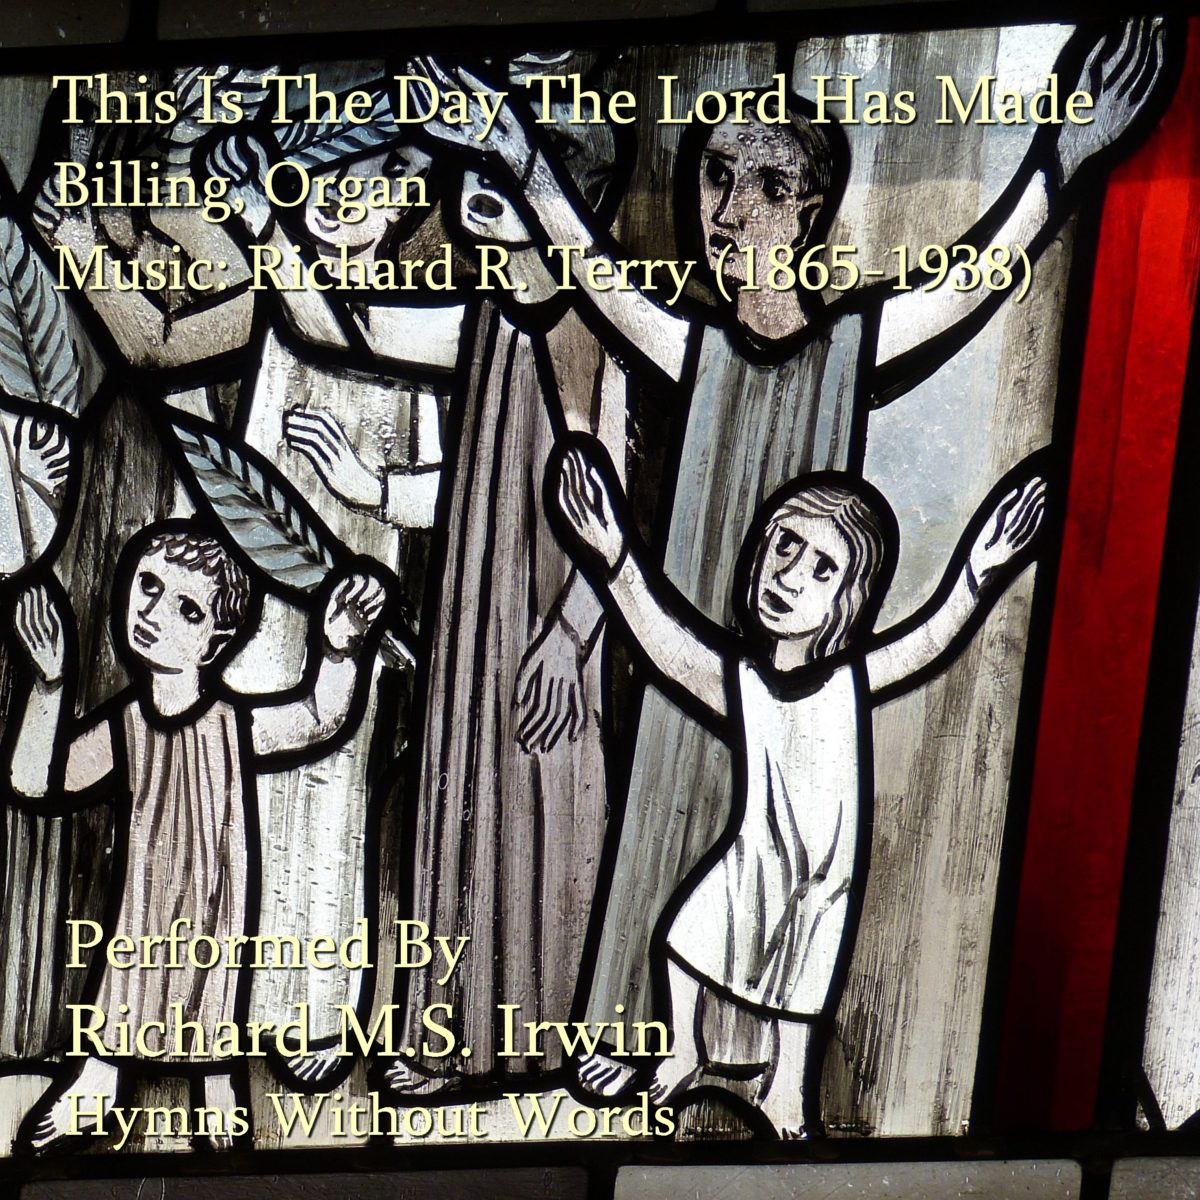 This Is The Day The Lord Has Made (Billing, Organ, 5 Verses)